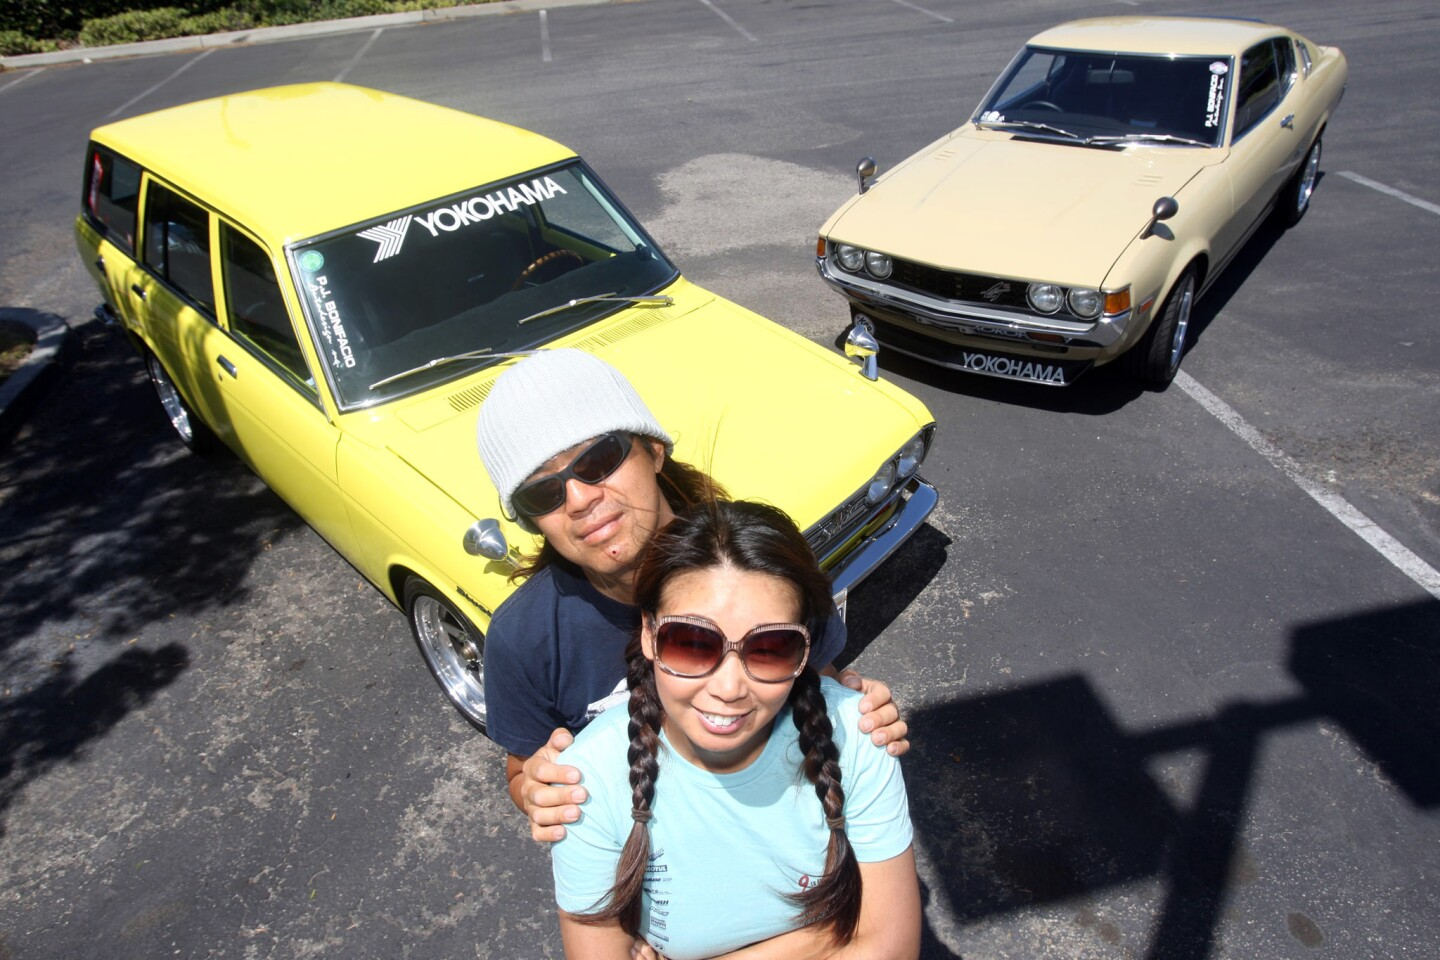 Terry, right, and Koji Yamaguchi with two of their classic cars on May 14 in La Mirada. They have a 1972 Datsun 510 wagon, left, and a 1977 Toyota Celica liftback. They are organizers of the 10th Annual Japanese Classic Car Show.